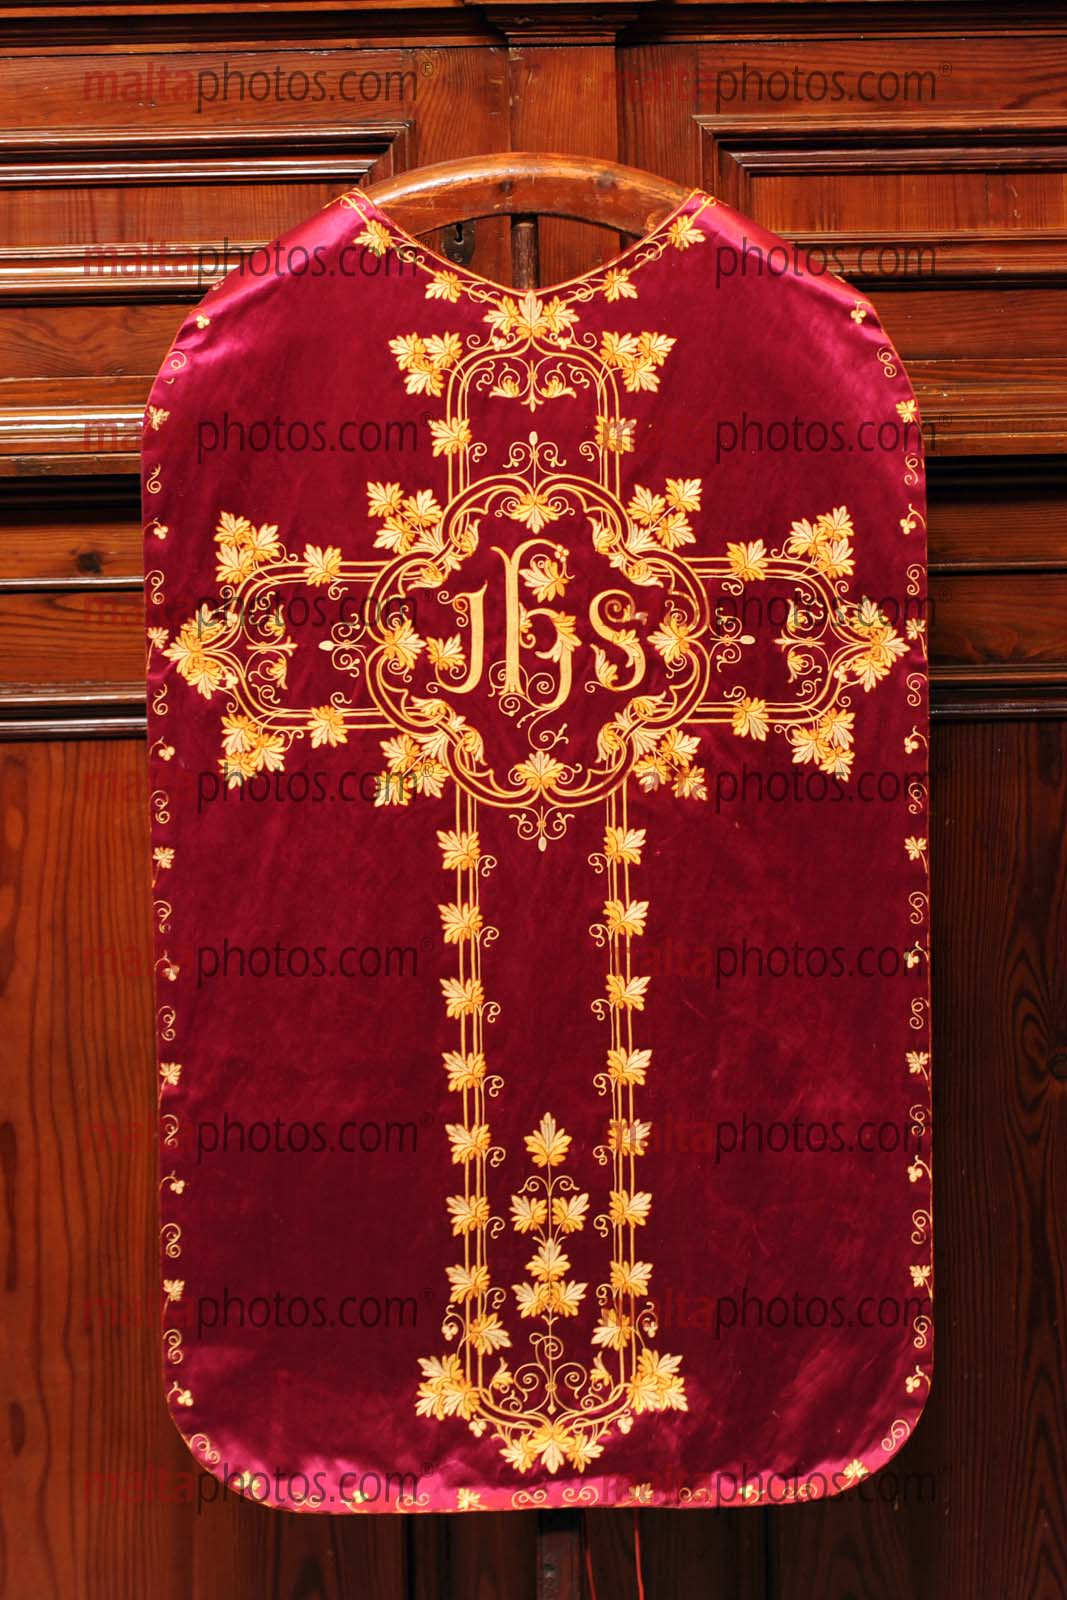 Church Liturgical Handmade Garments Sacret Vestment Priest Religion  Religious Christian Clergy Apparel Embroidered